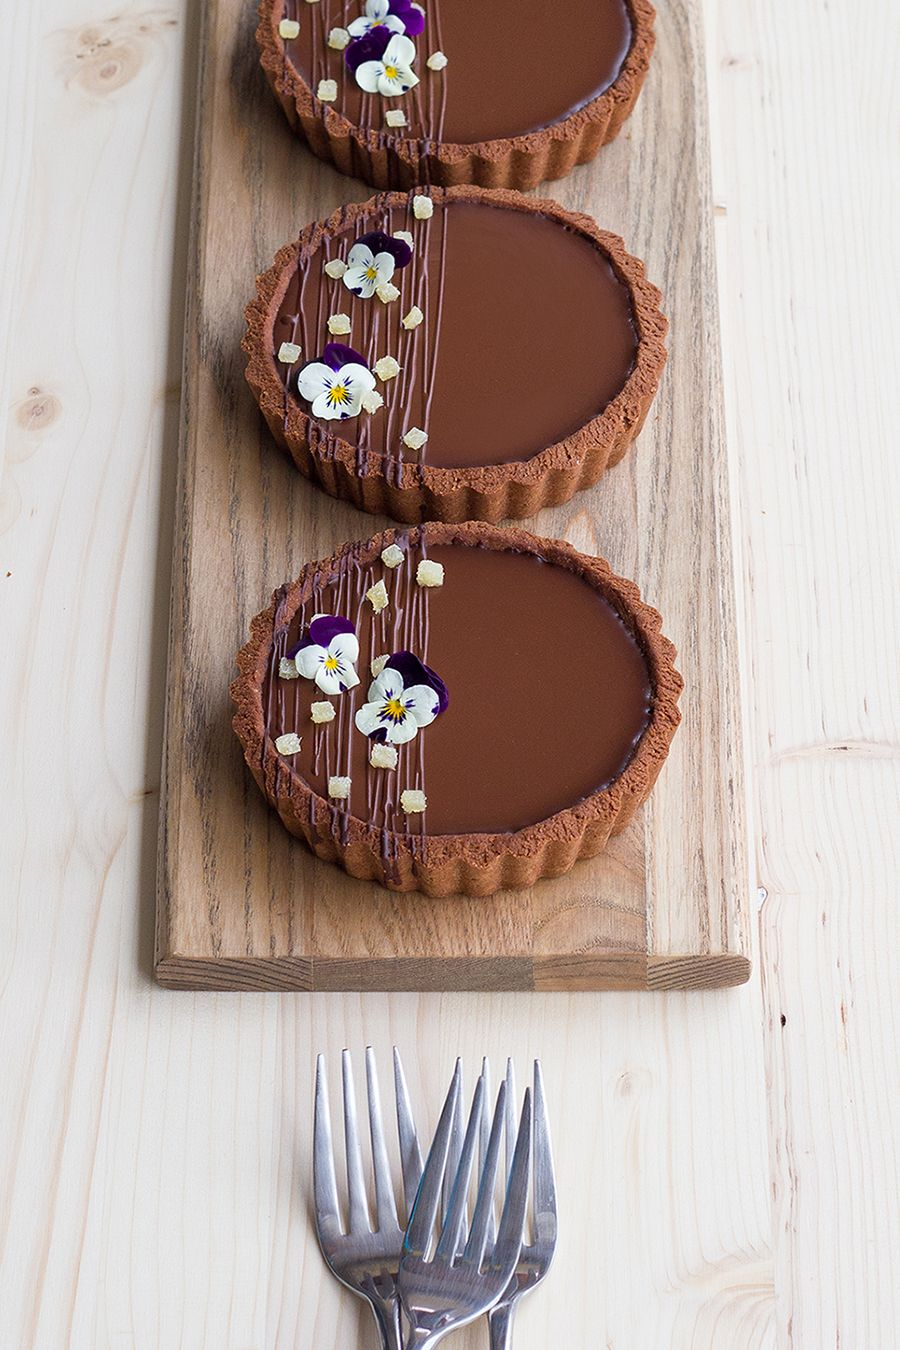 Coconut and Dark Chocolate Tart with Ginger Carame